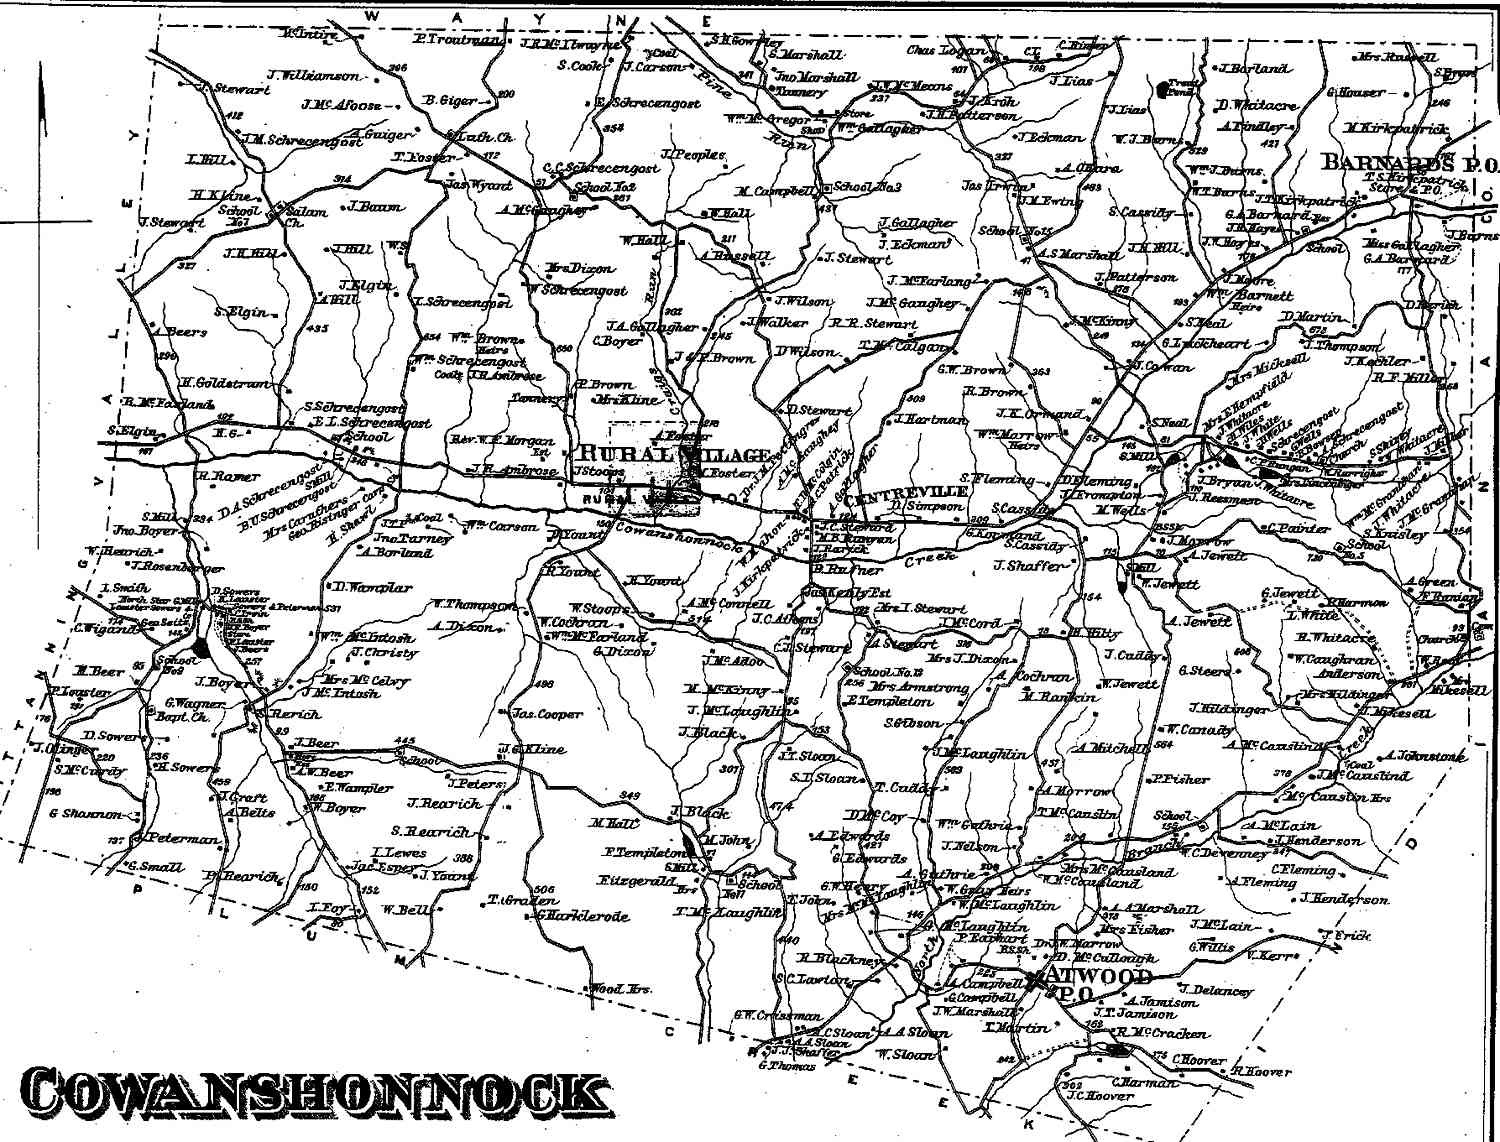 cowans I Map Of Oakland County on map of pontiac, map of metro detroit area, map of yamhill co, map of leonard, map california county, map of michigan, map of hamtramck, map of davisburg, map of athens high school,